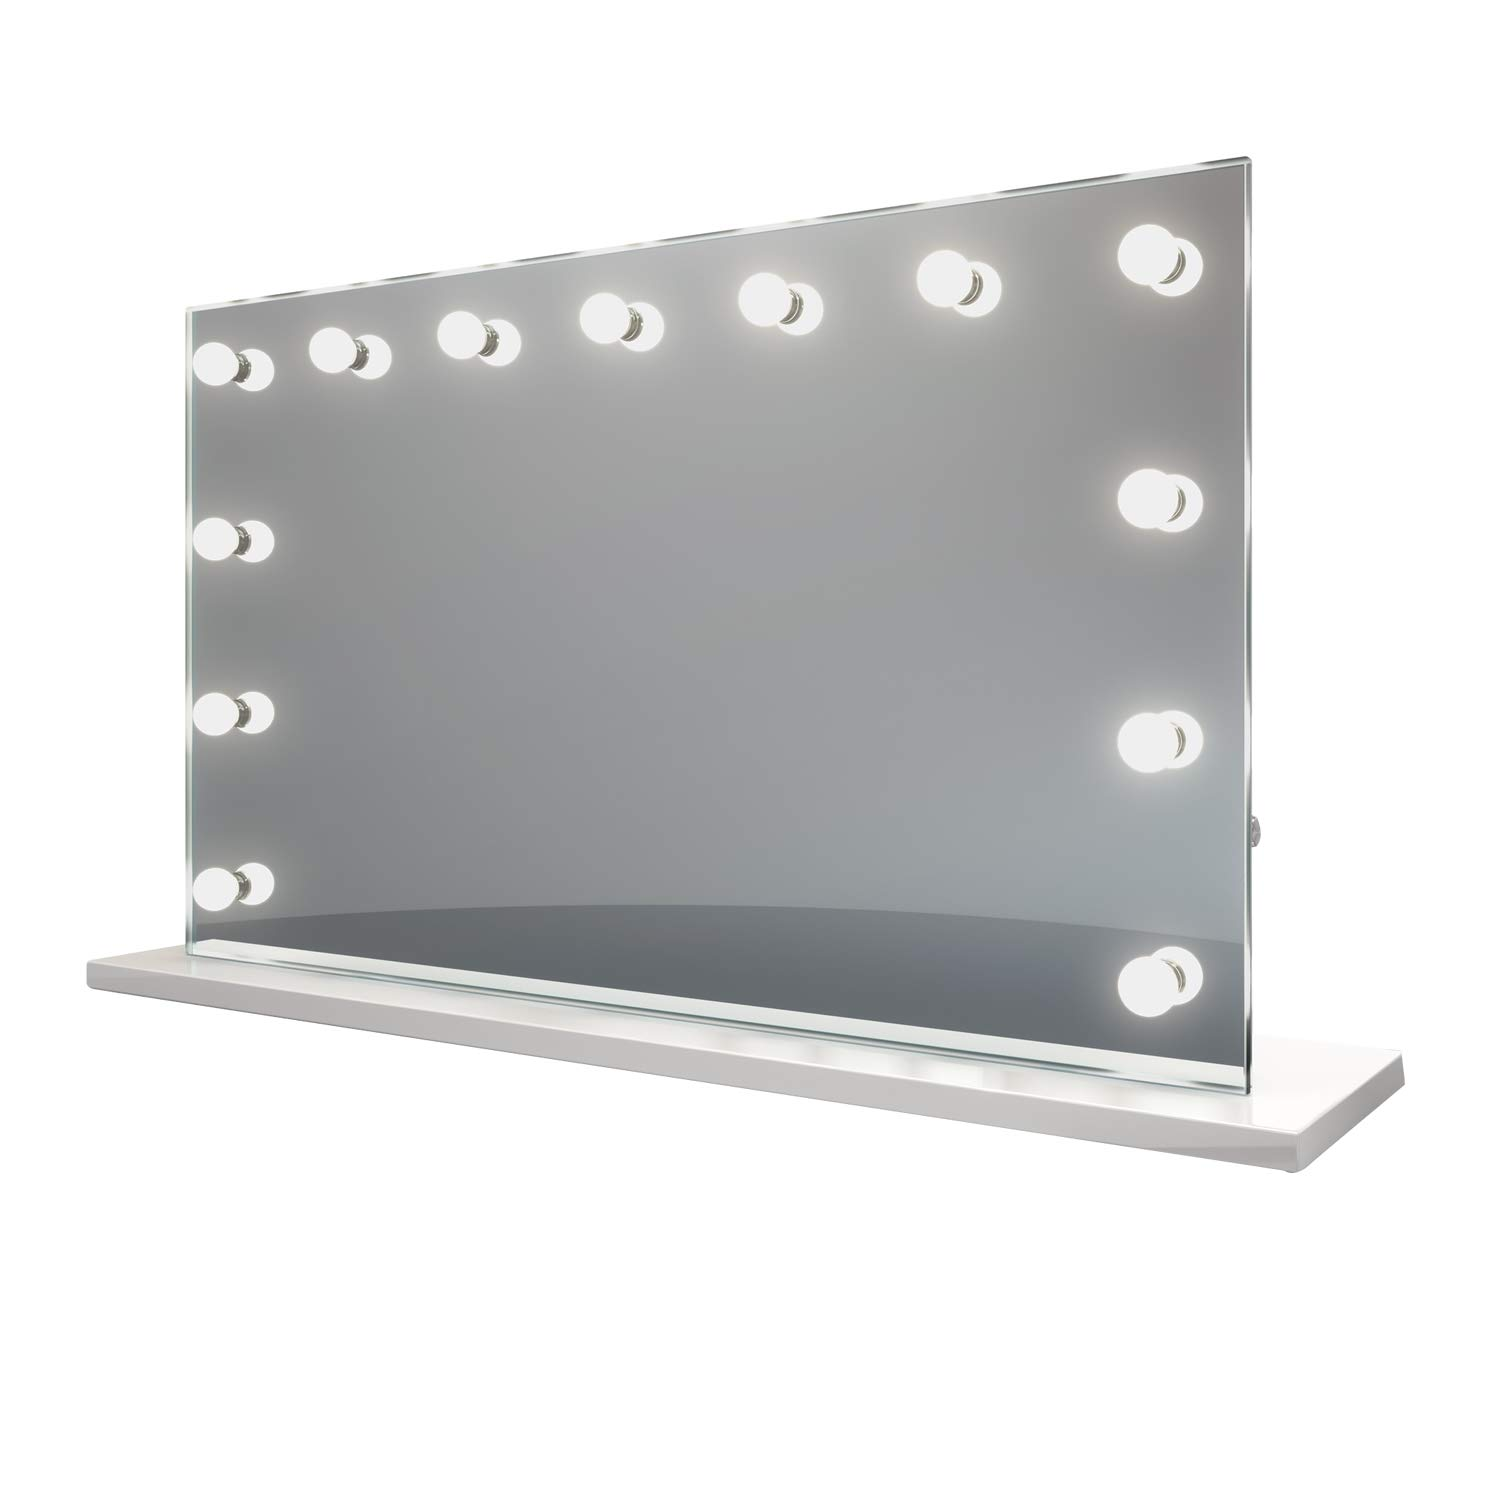 Diamond X Hollywood Makeup Vanity Mirror with Warm White Dimmable LED k91sWW by DIAMOND X COLLECTION